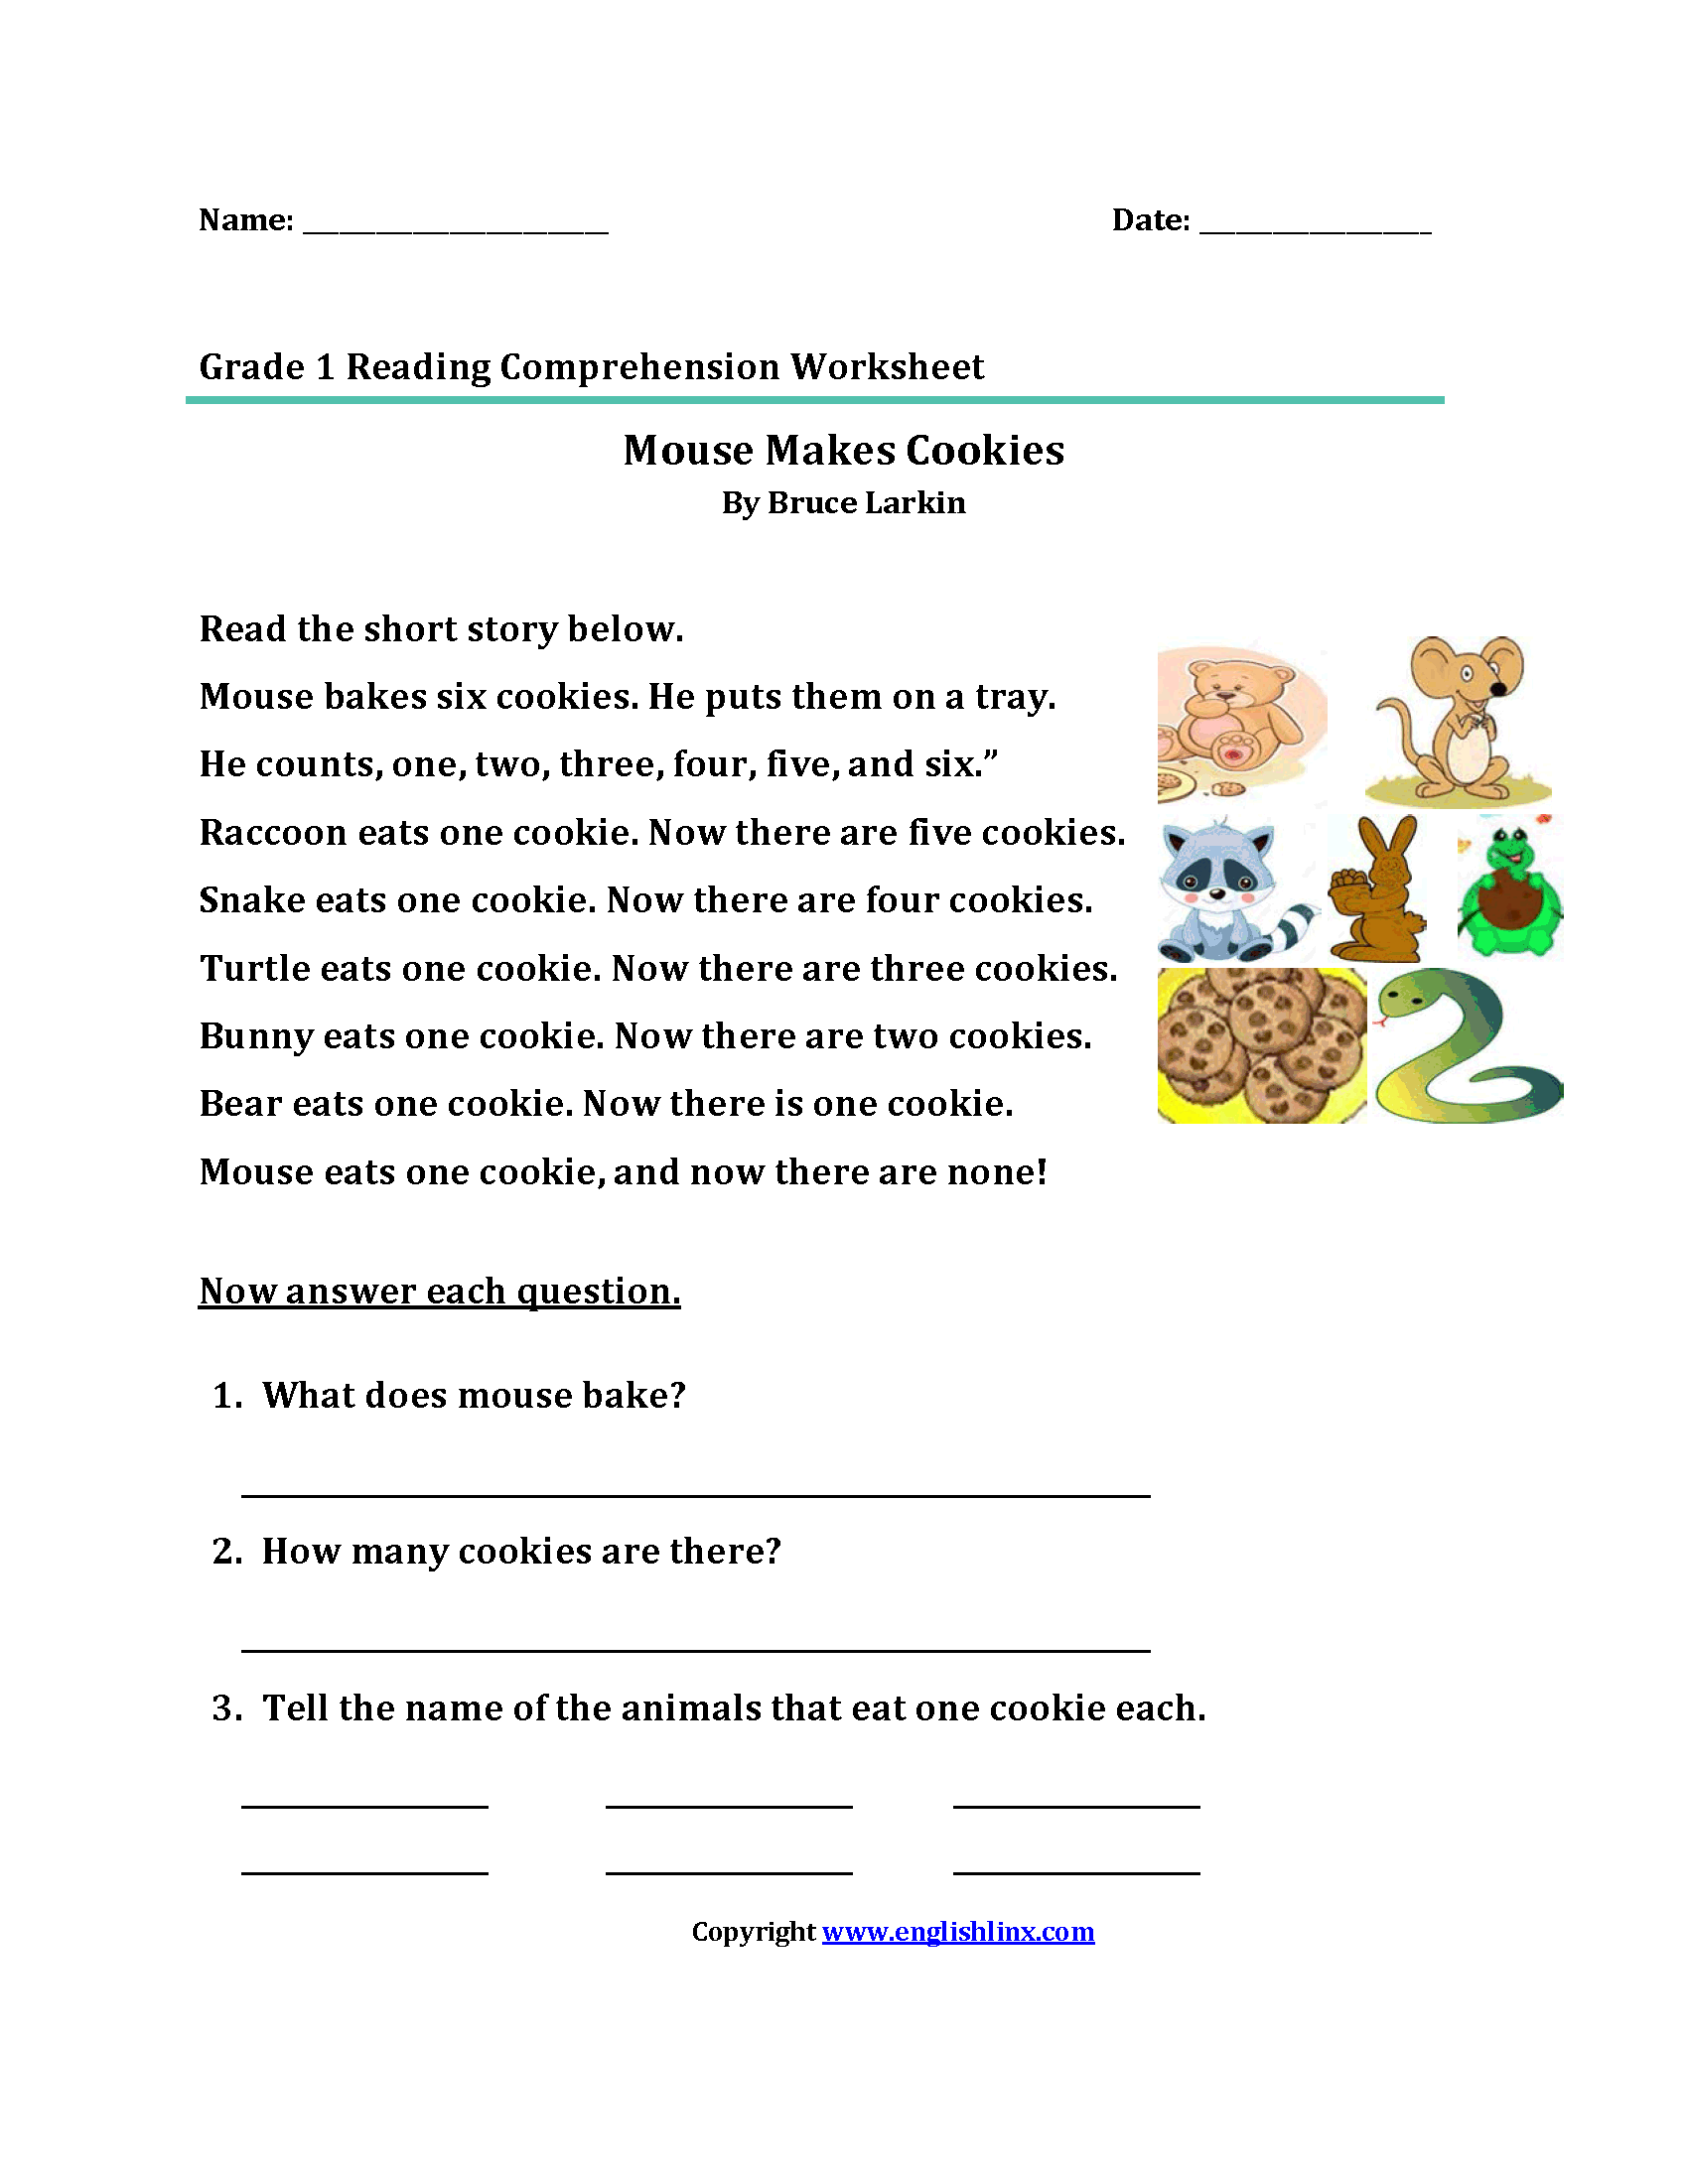 Worksheets Reading Worksheets For 1st Graders reading worksheets first grade worksheets